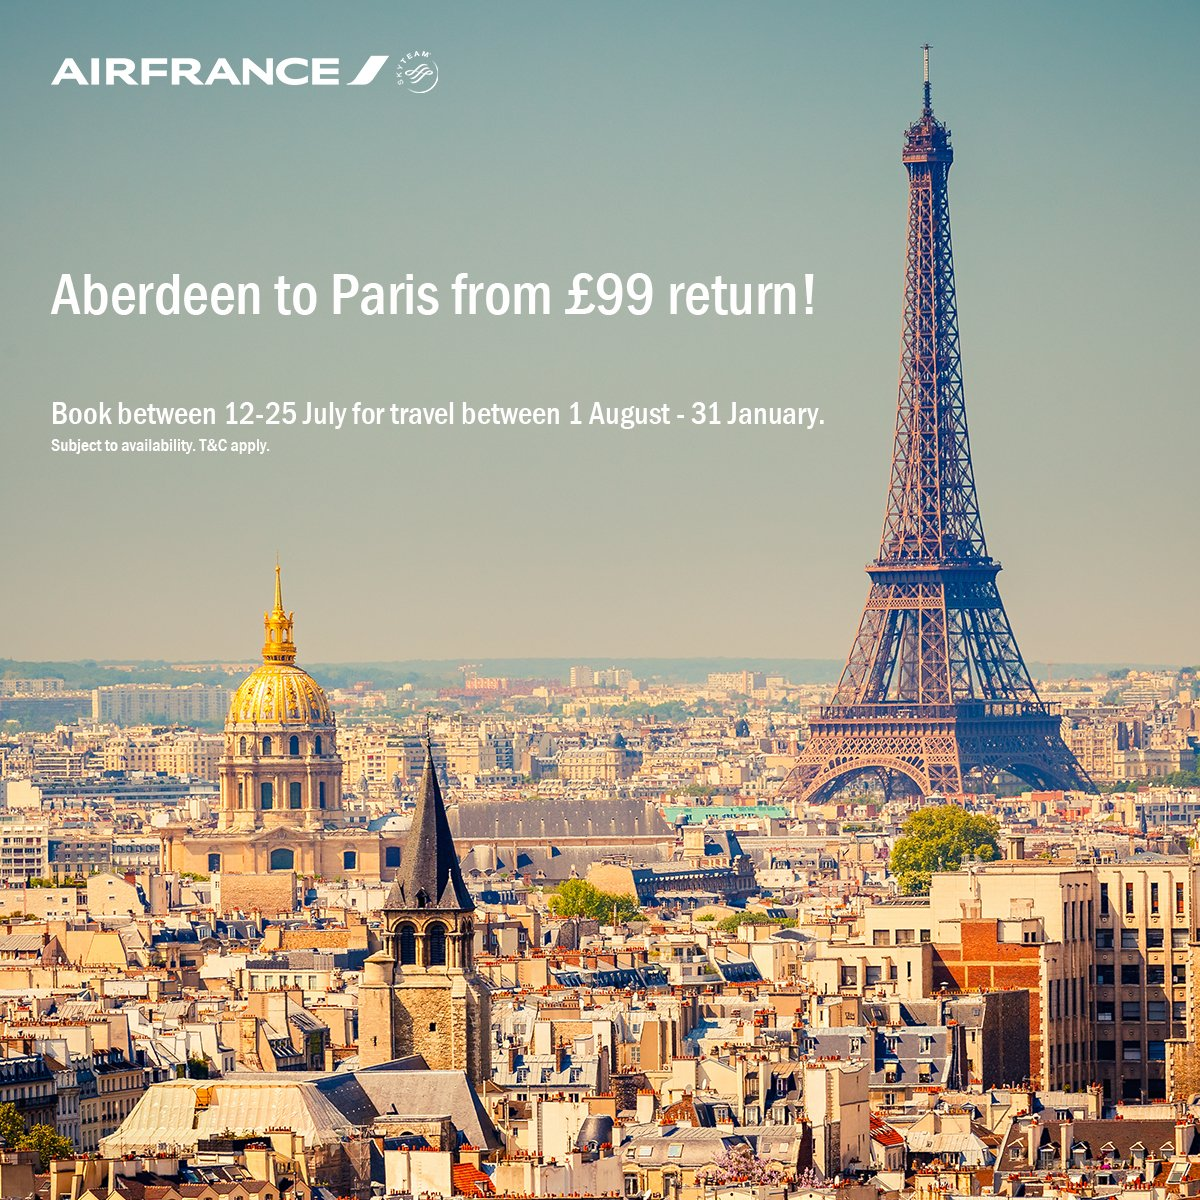 Aberdeen - Paris with Air France from £99 return! Book by 25Jul, travel between 1Aug & 31Jan